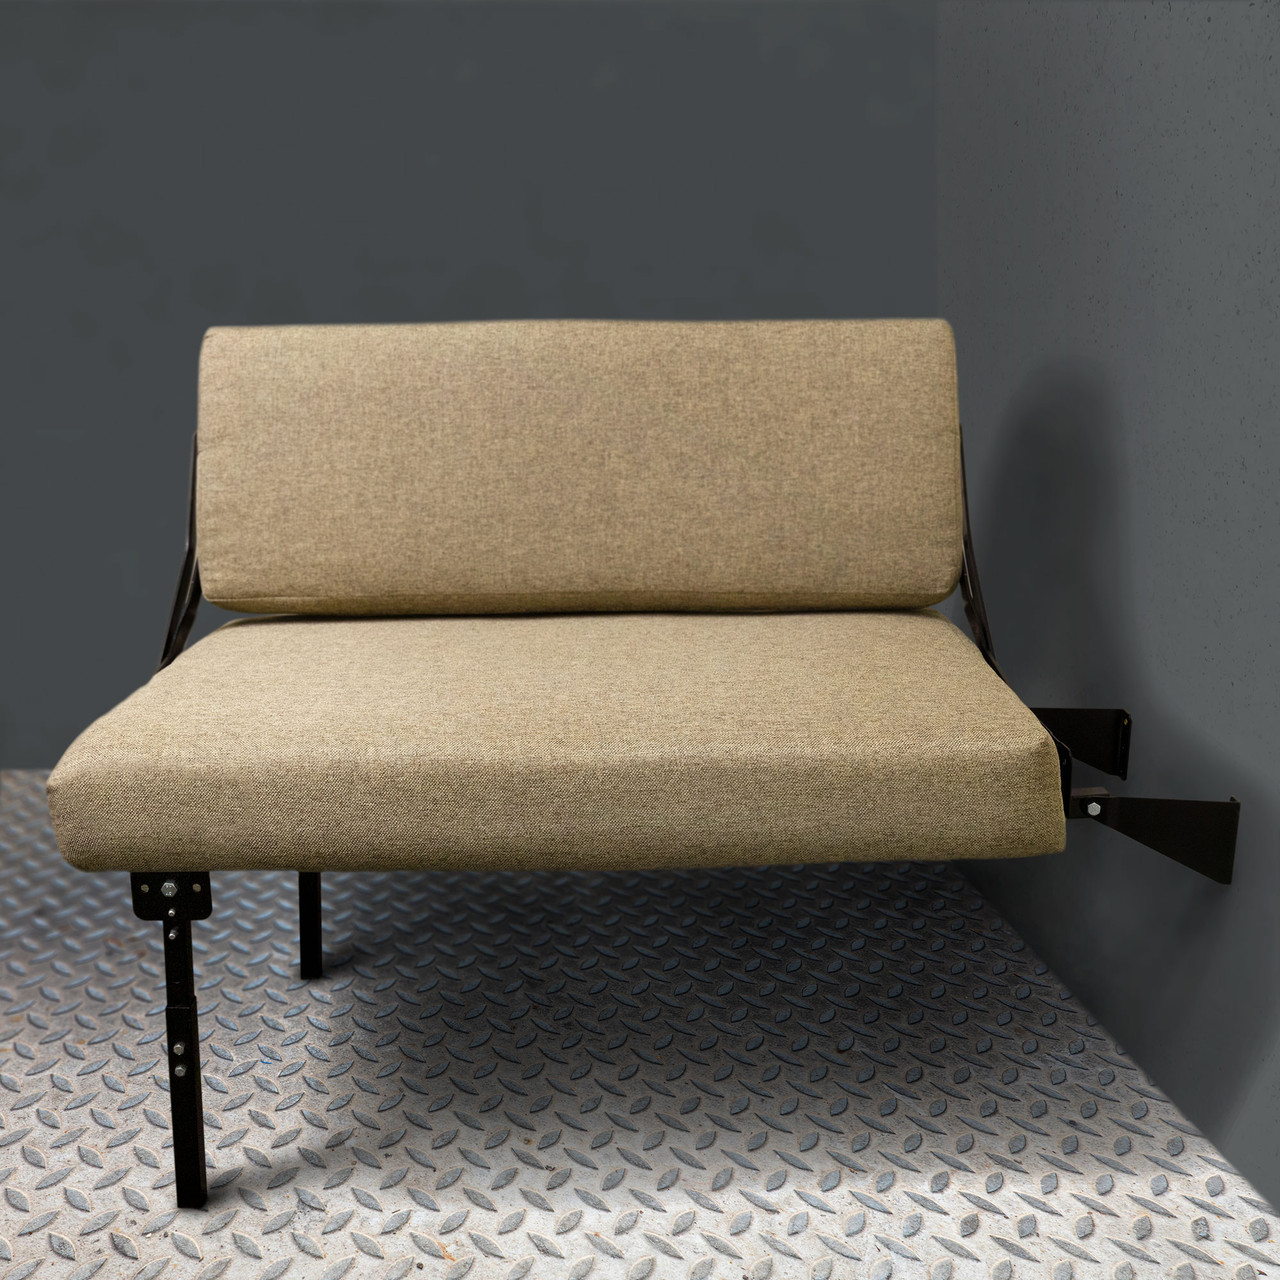 Wall Mount Dinette